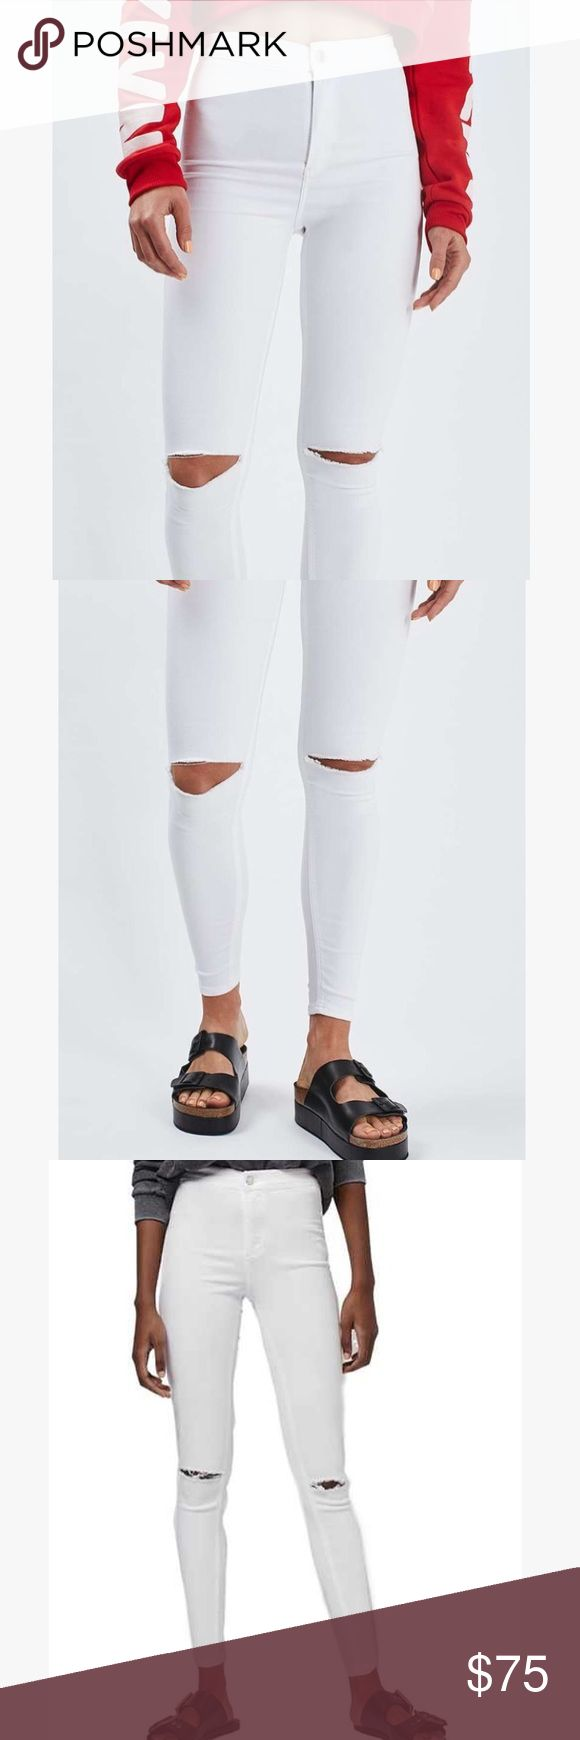 Topshop Joni White Ripped Jeans NWOT! I only wore these for 2 hours! Topshop white ripped jeans W28 L30. Sold out at Topshop, Joni style, high waisted! Topshop Pants Skinny